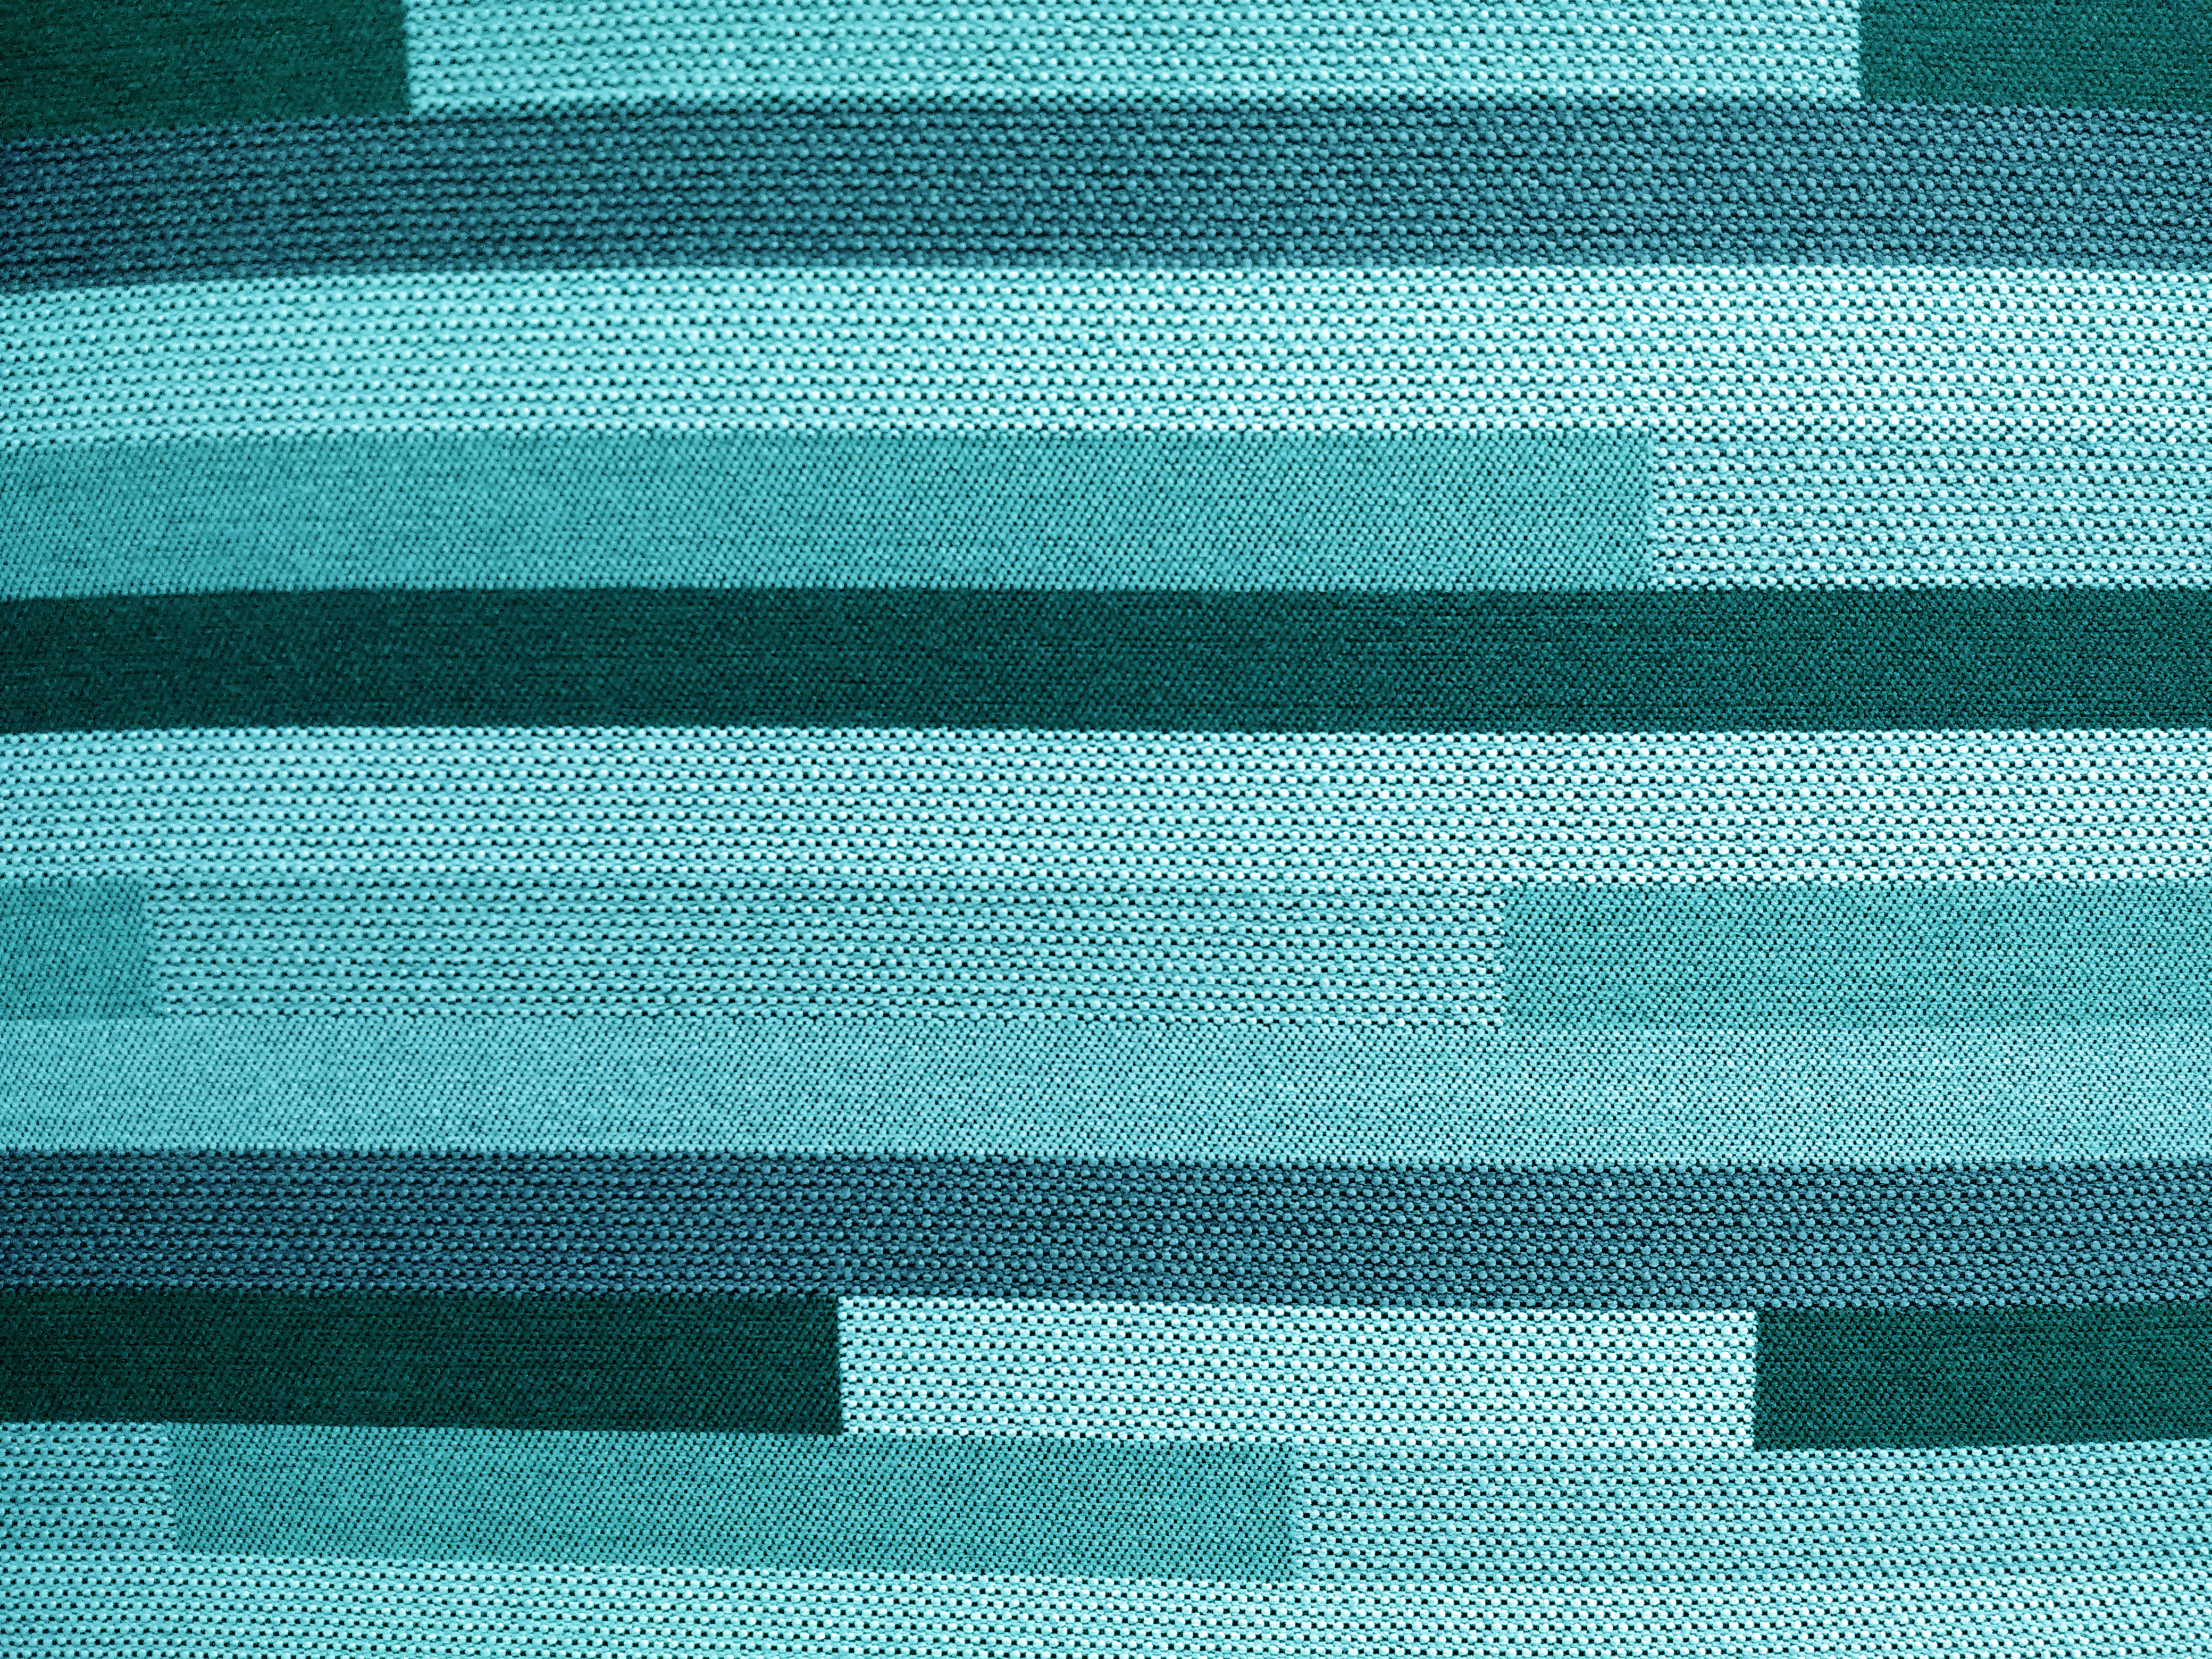 Striped Turquoise Upholstery Fabric Texture Picture Free